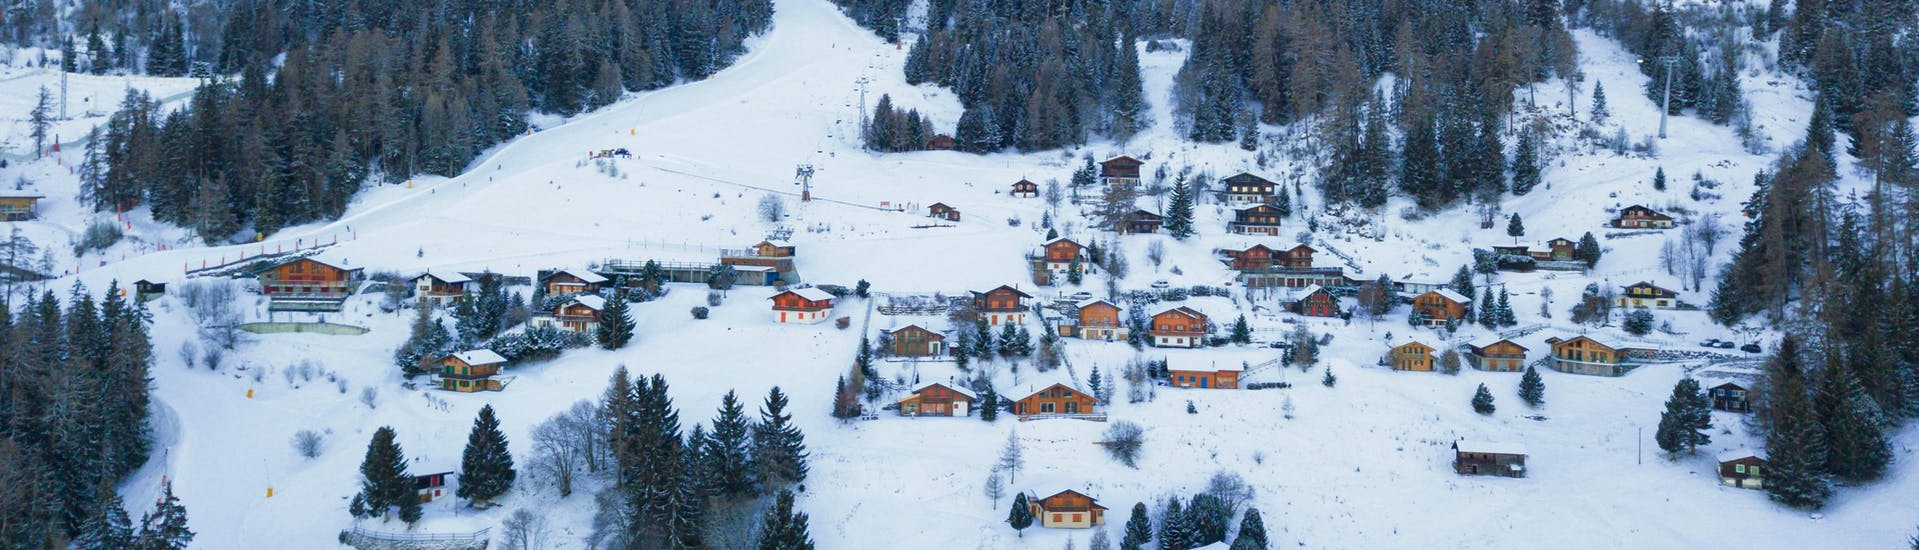 An aereal view of the small village of La Tzoumaz, a popular Swiss ski resort in which visitors can book ski lessons with the local ski schools.